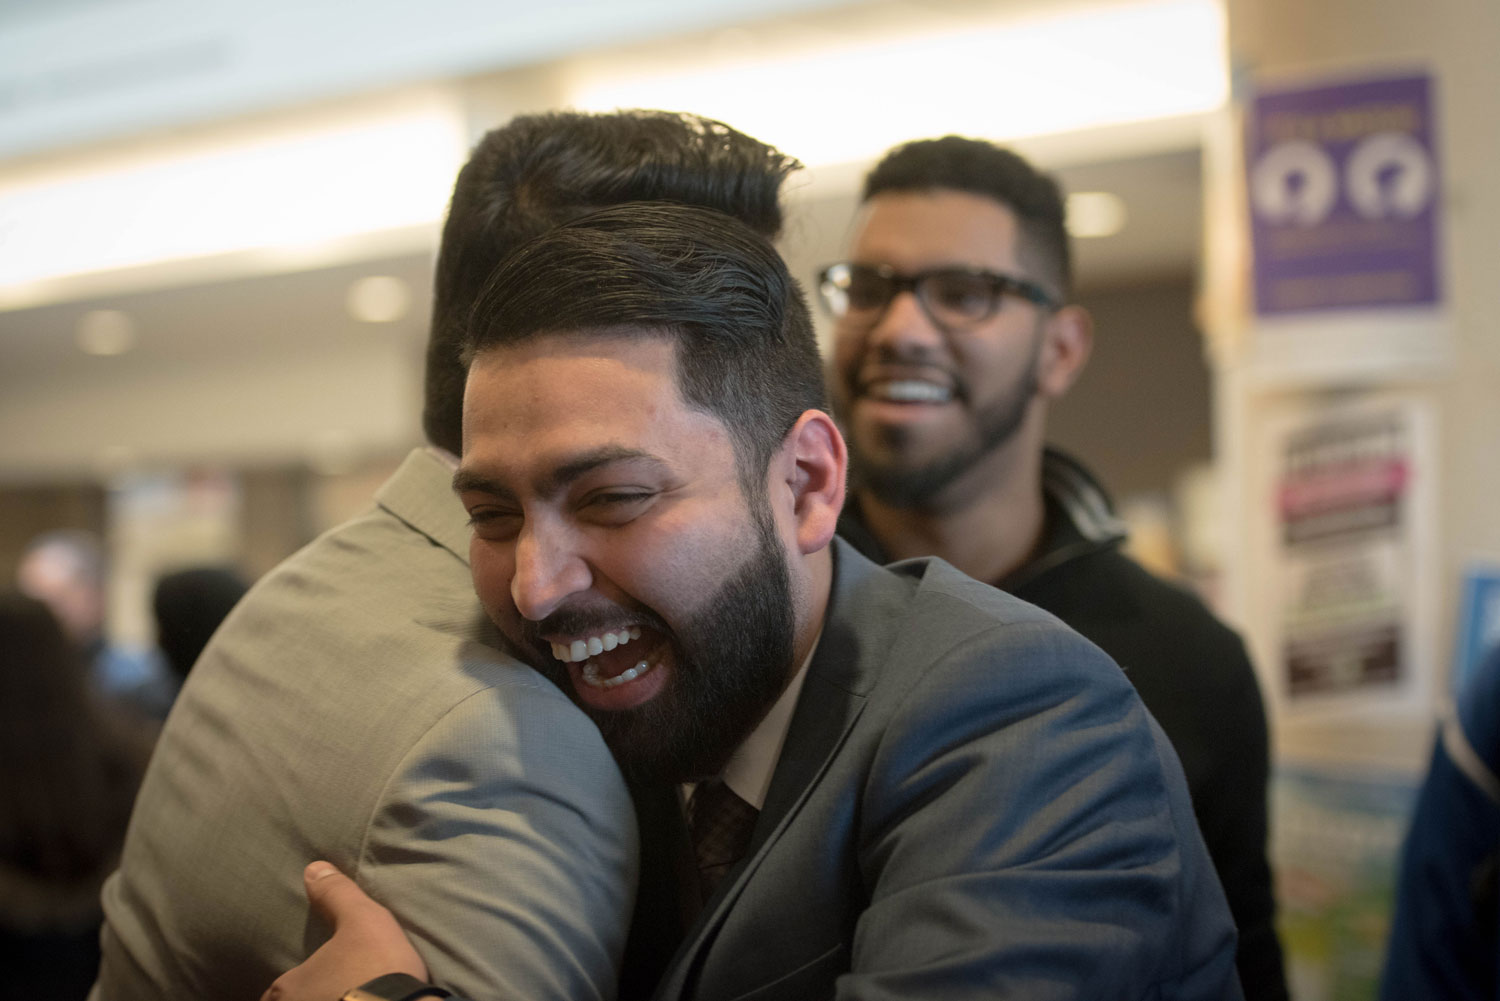 Colleagues share a joyful moment at the ceremony. ${altNumber}